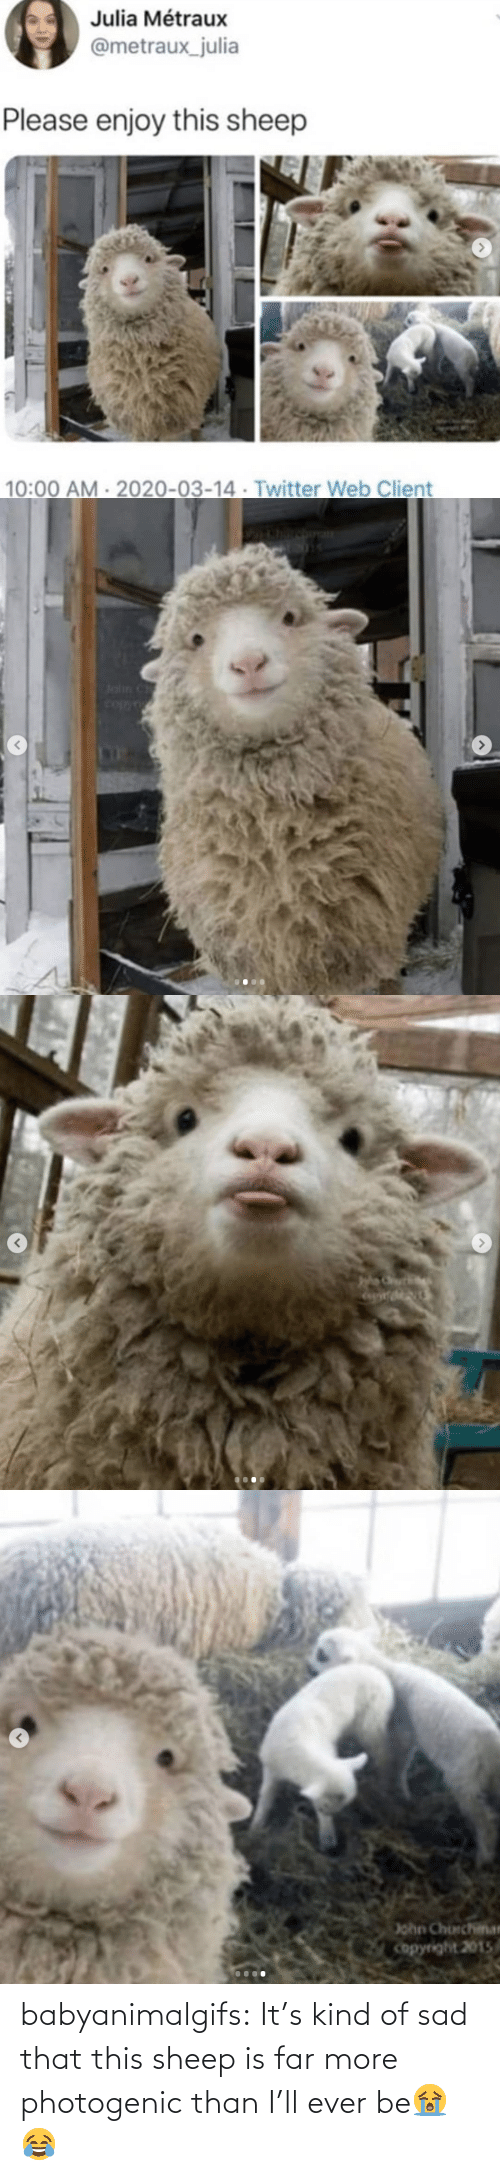 Kind: babyanimalgifs:  It's kind of sad that this sheep is far more photogenic than I'll ever be😭😂